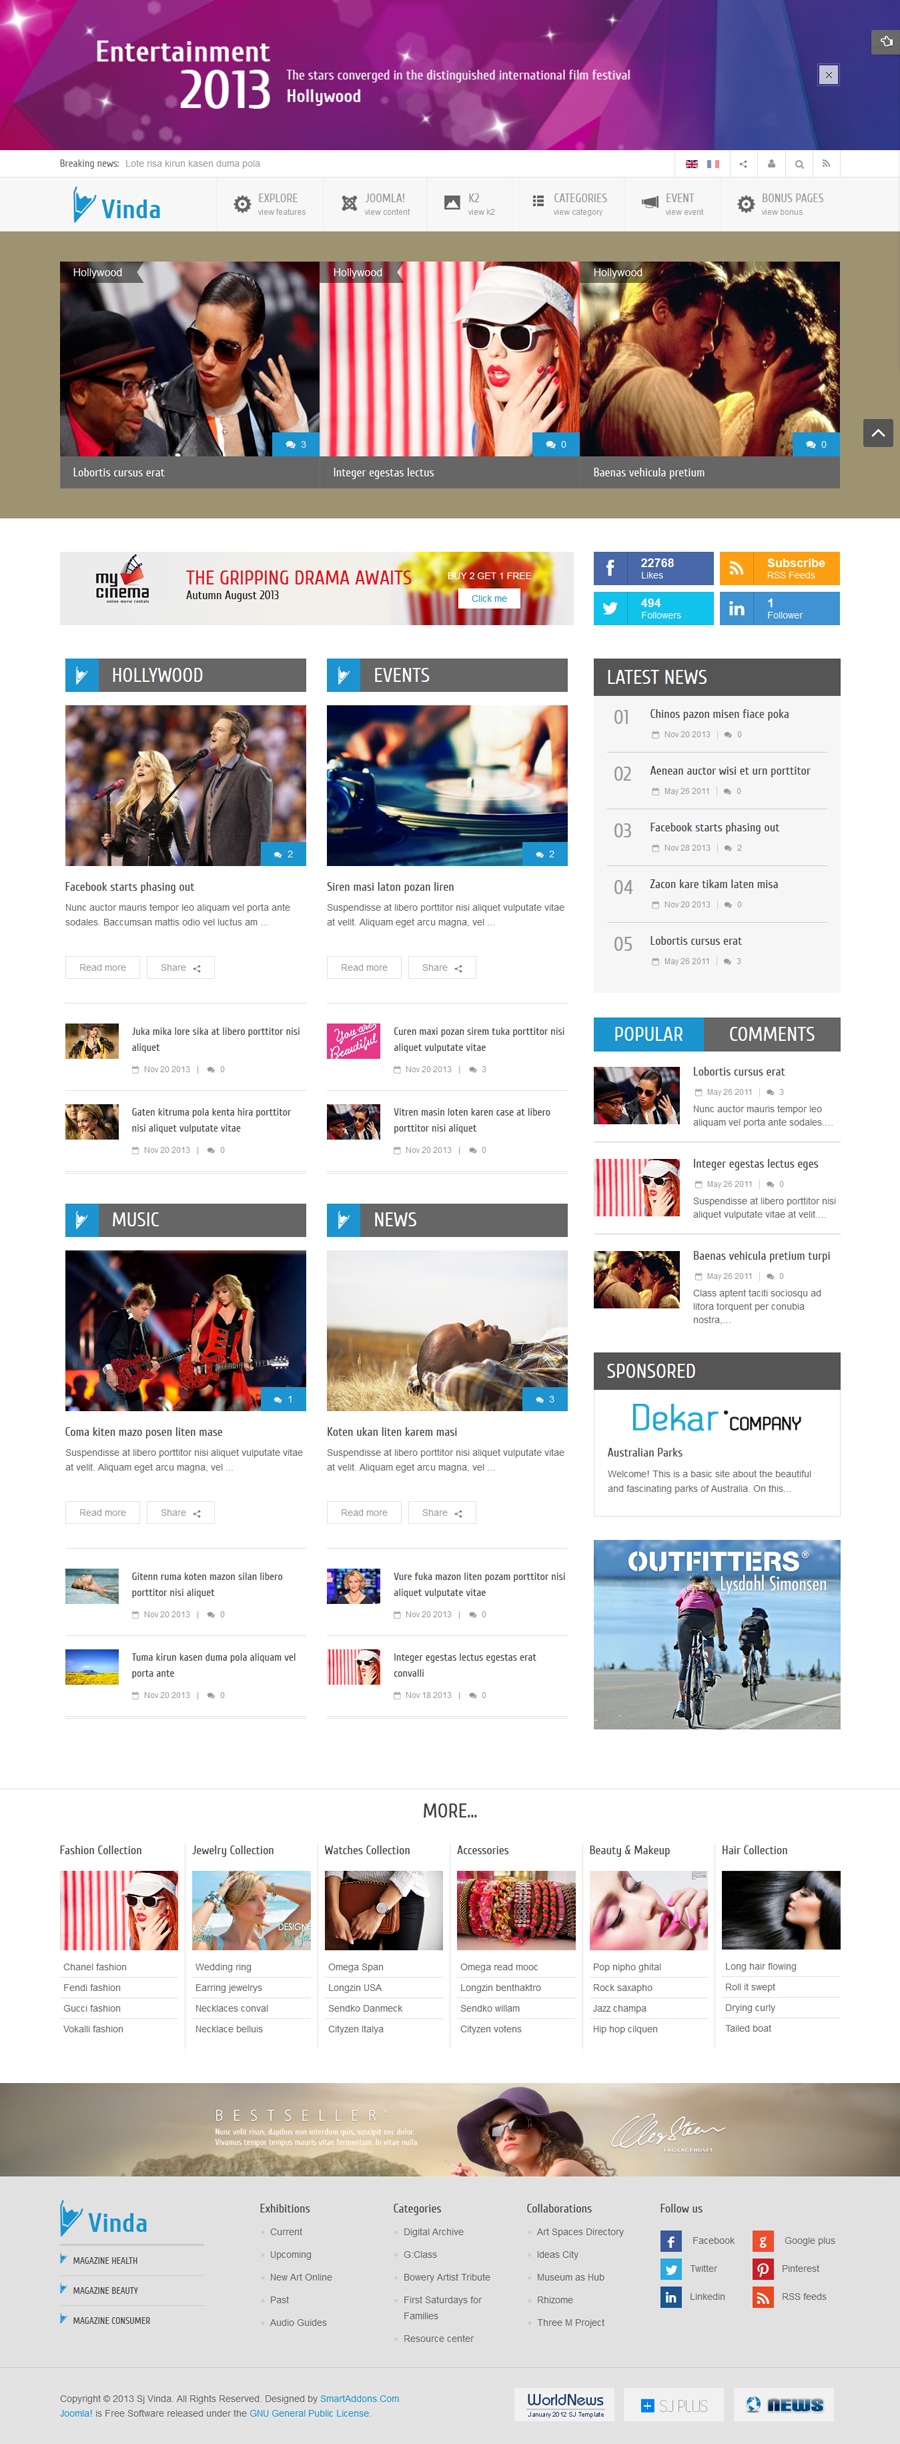 SJ Vinda - Free Joomla Entertainment Template - 02homepage2.png